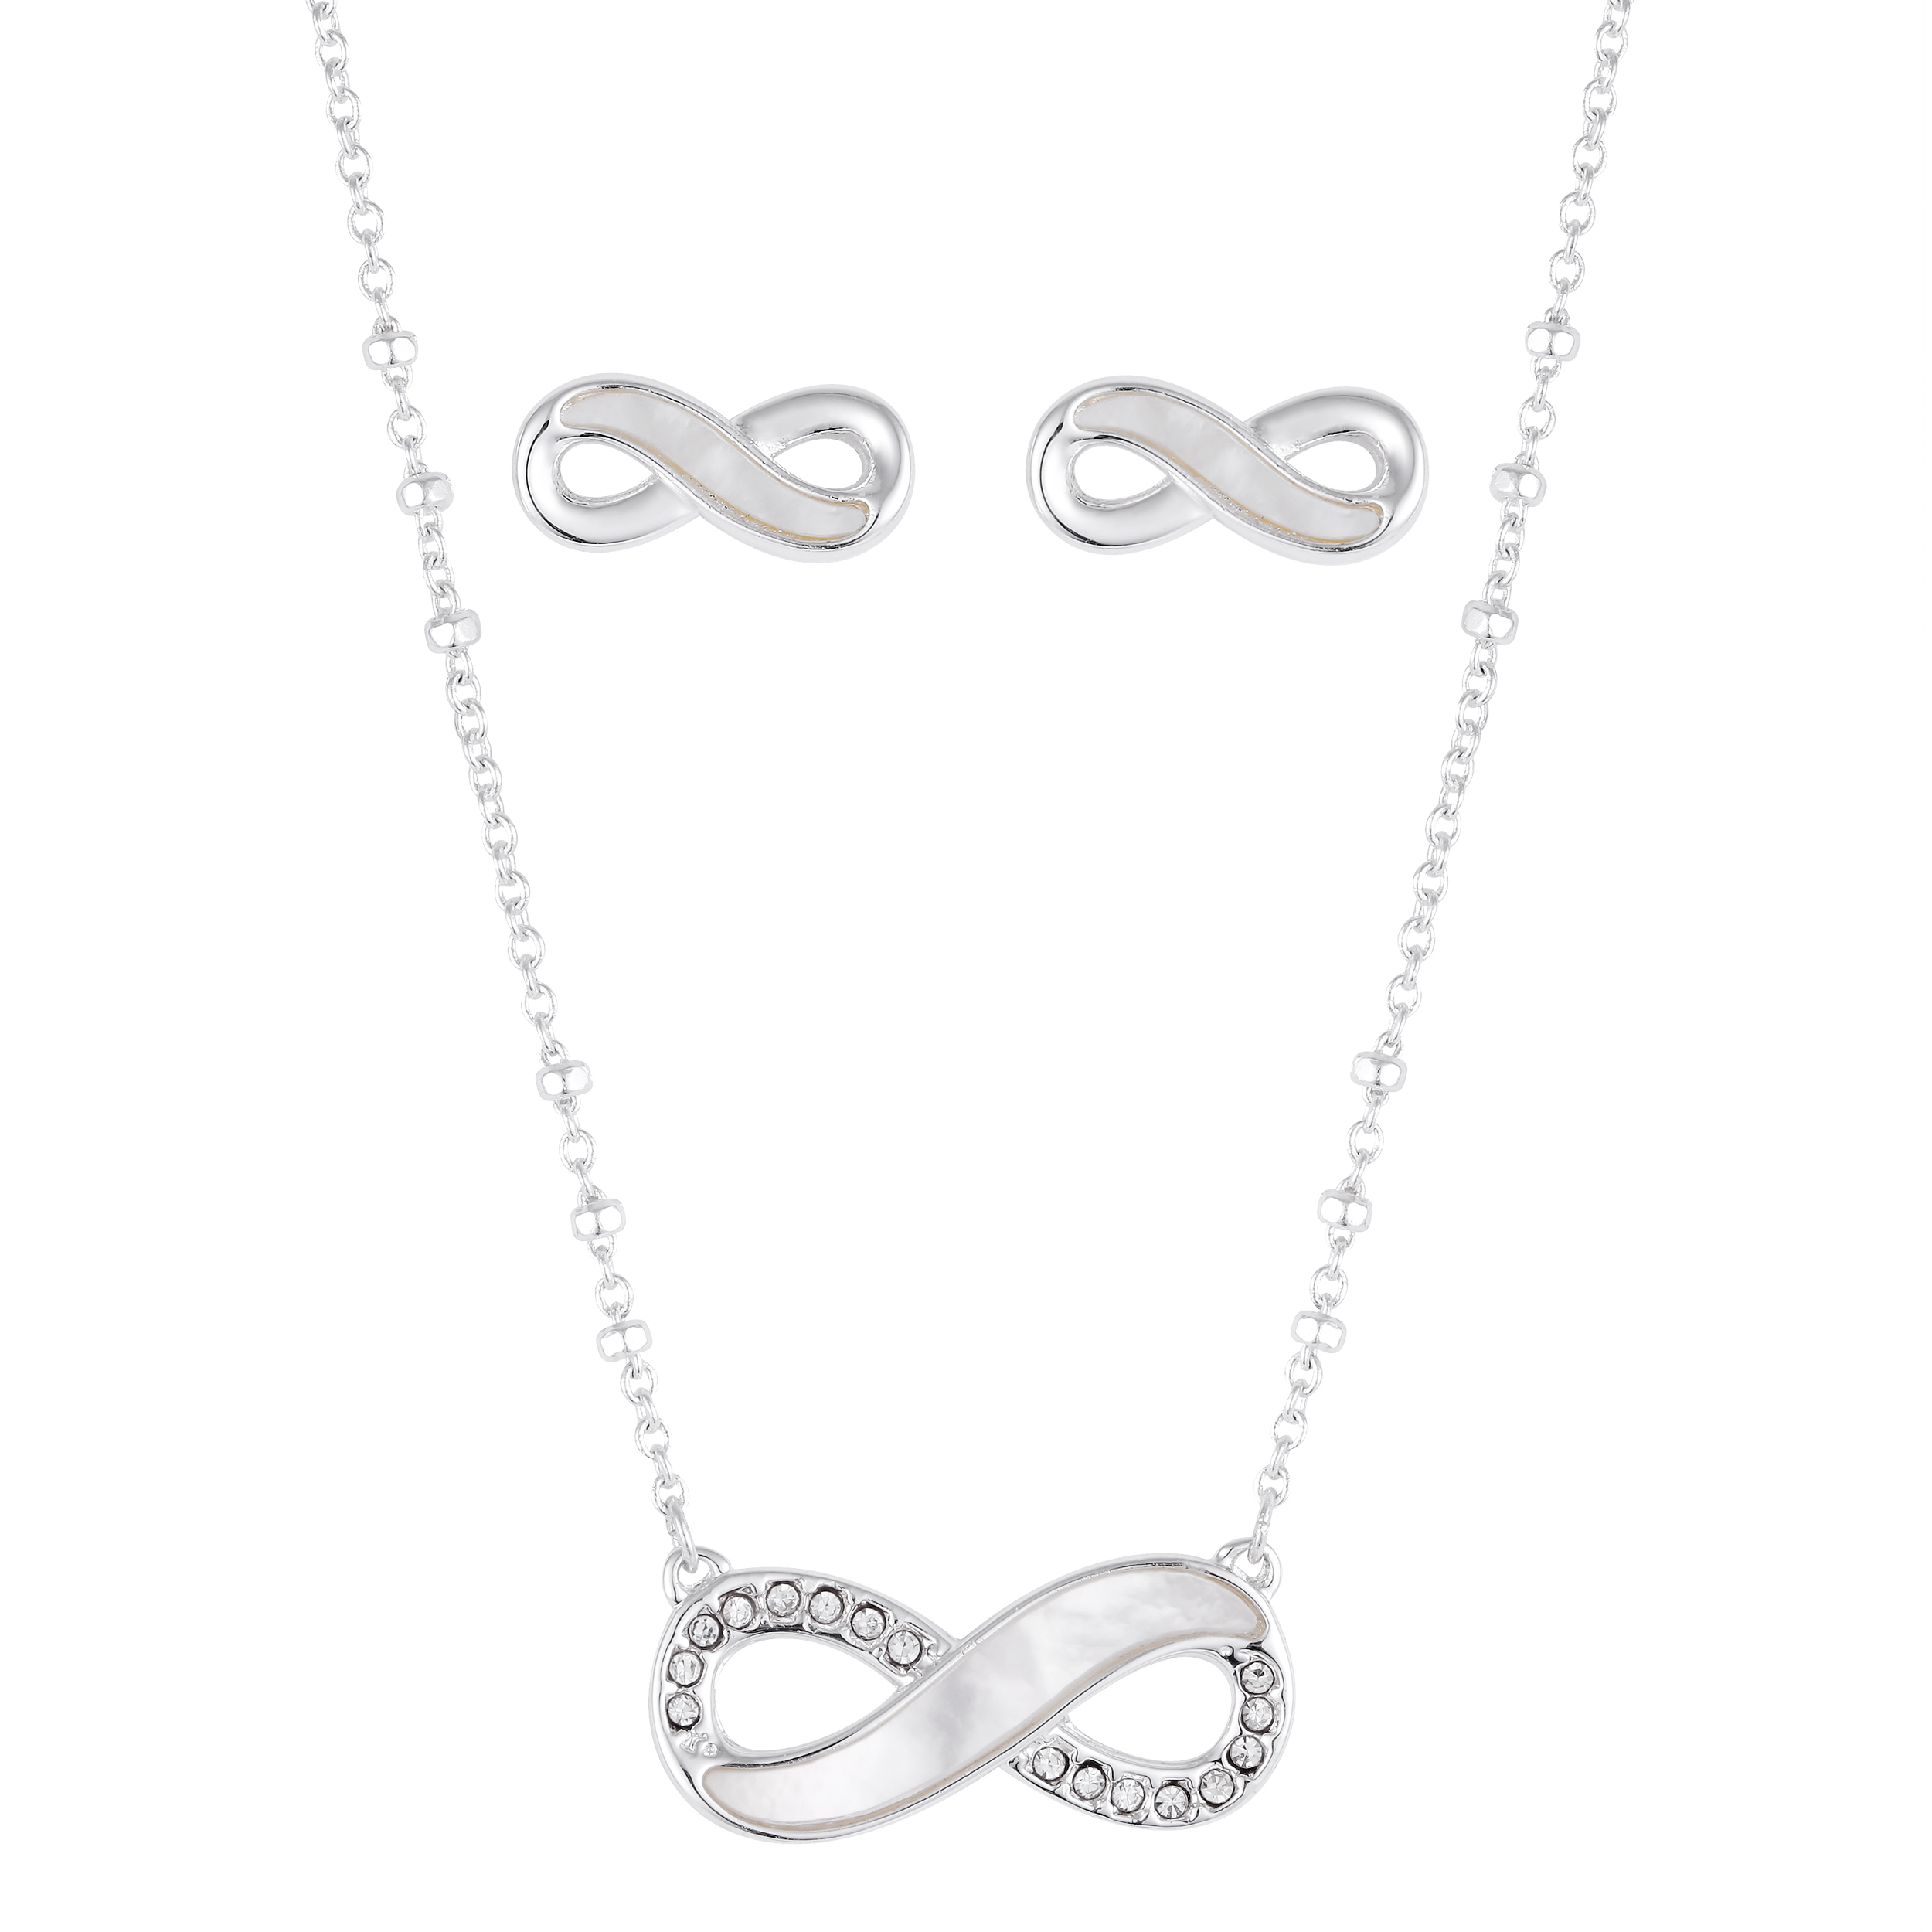 Stainless Steel Infinity Pendant and Matching Earring Set